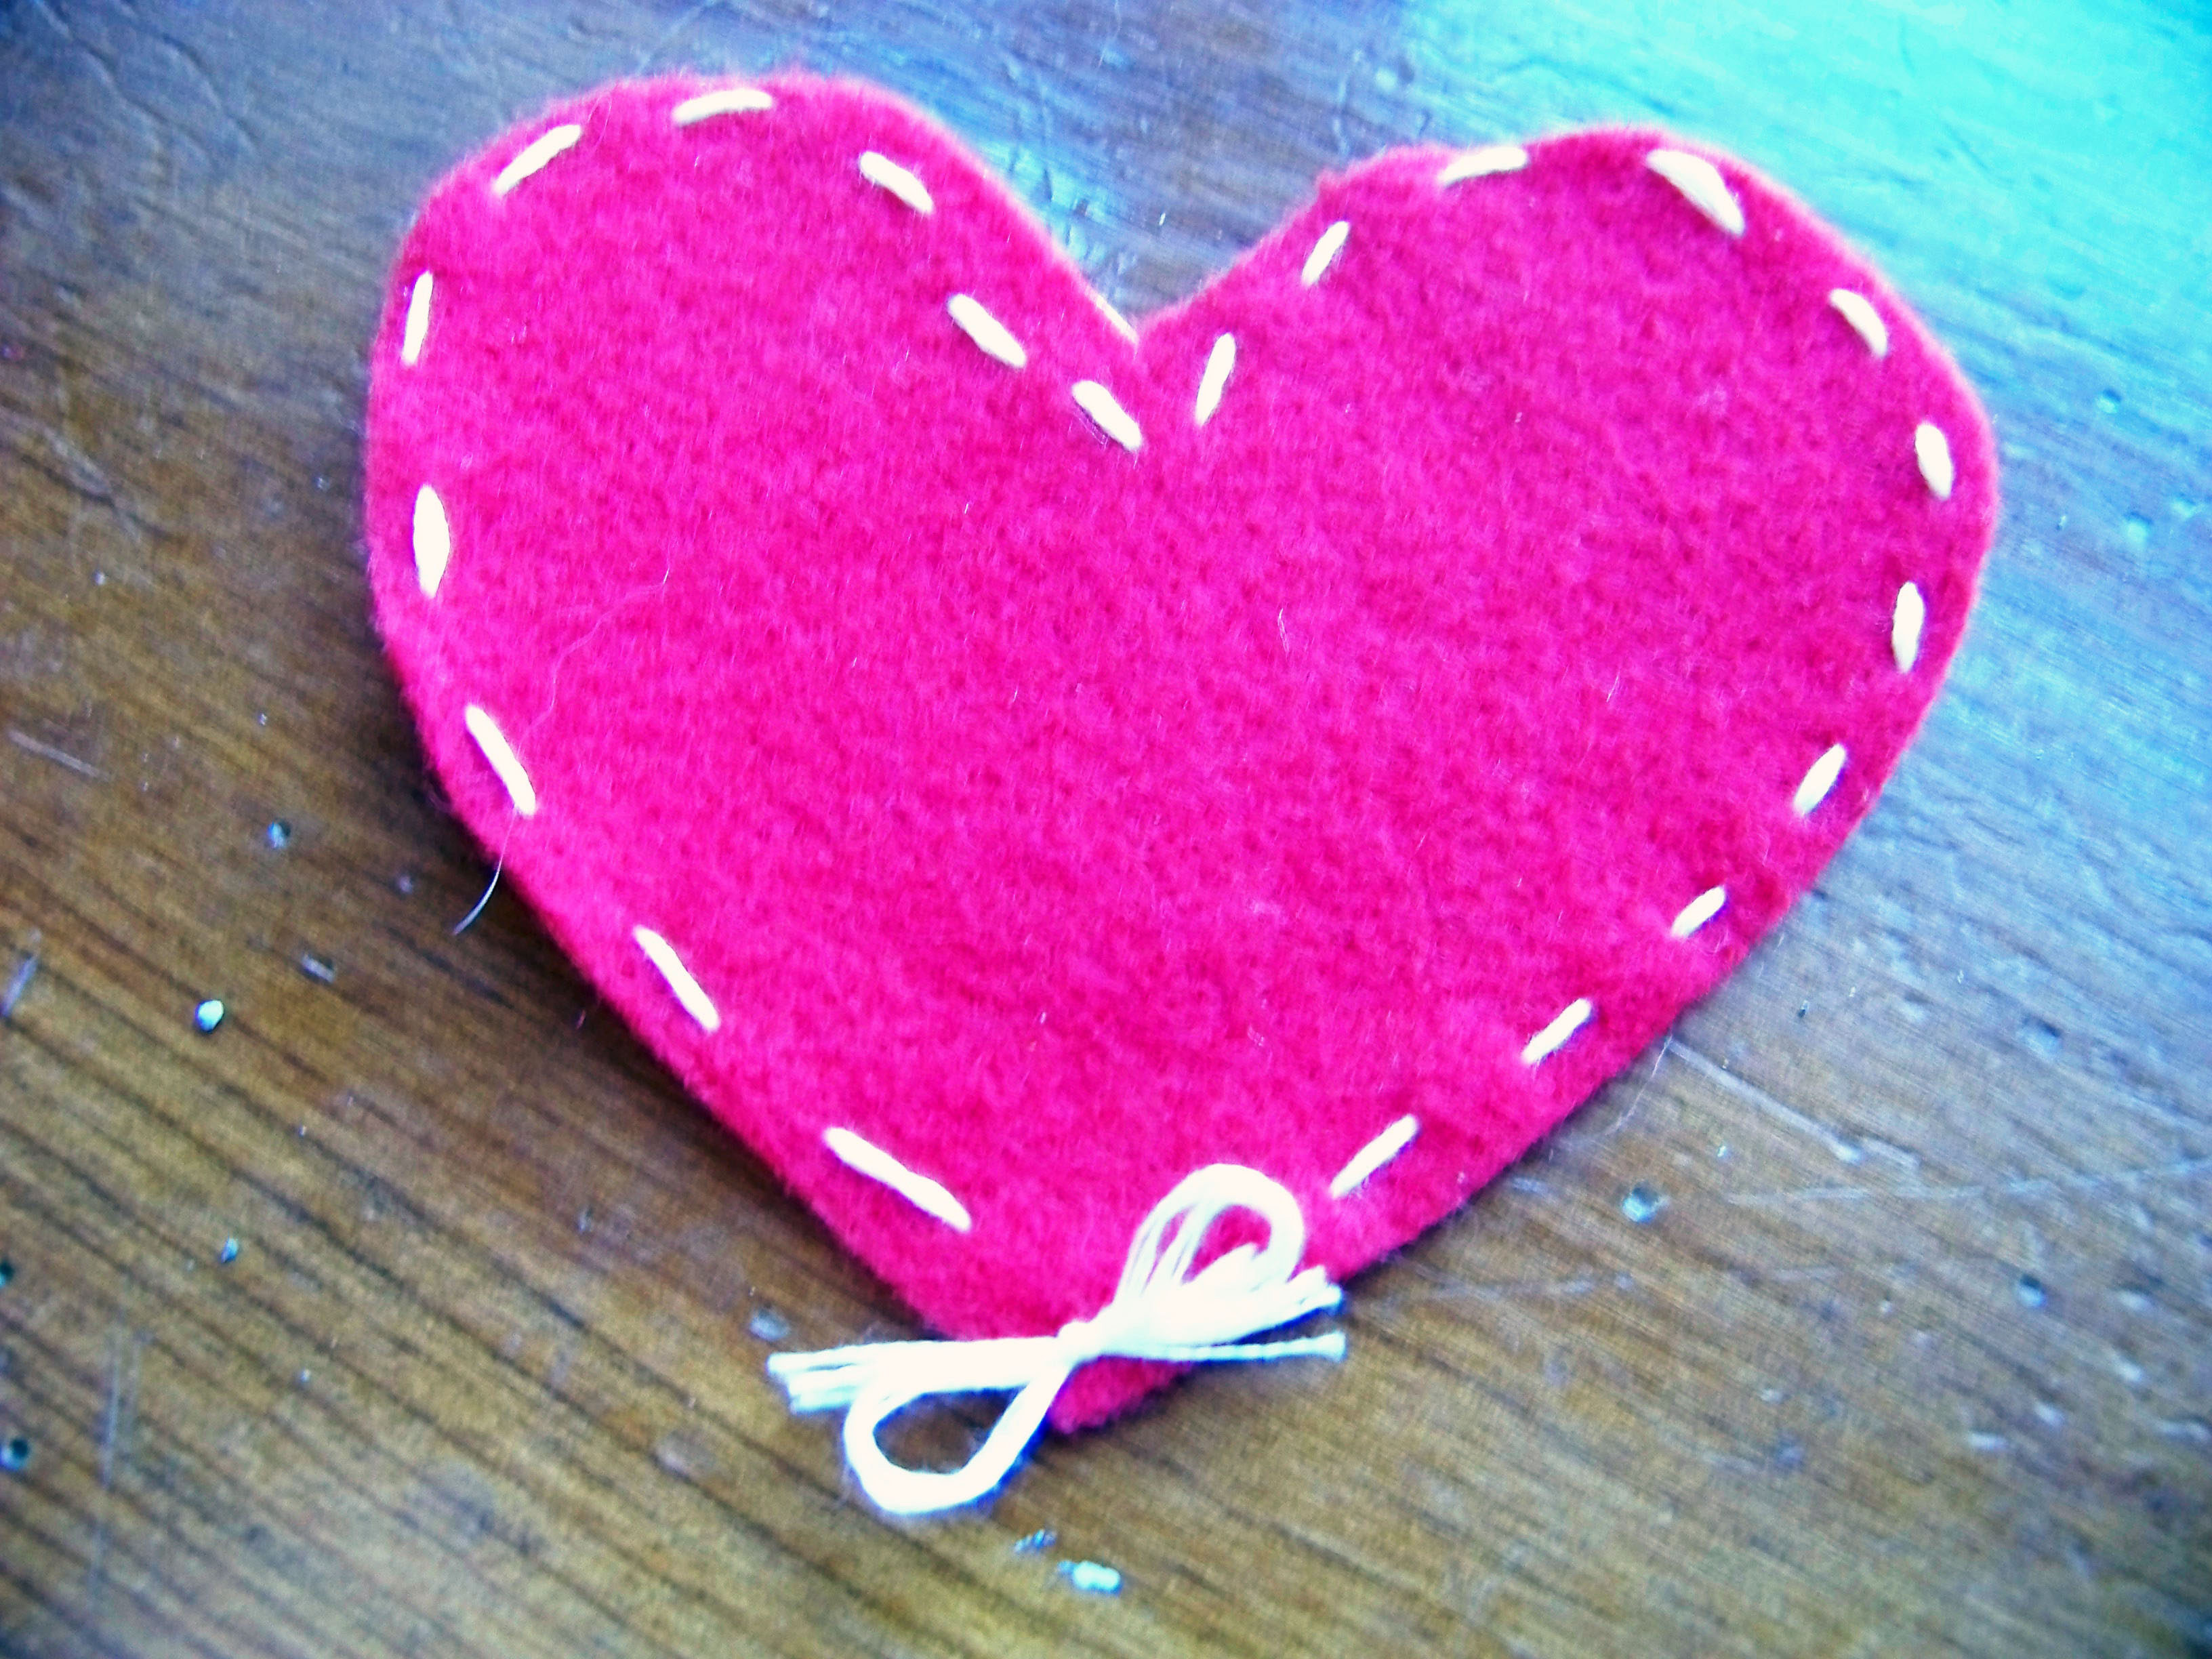 homemade valentine heart with bow